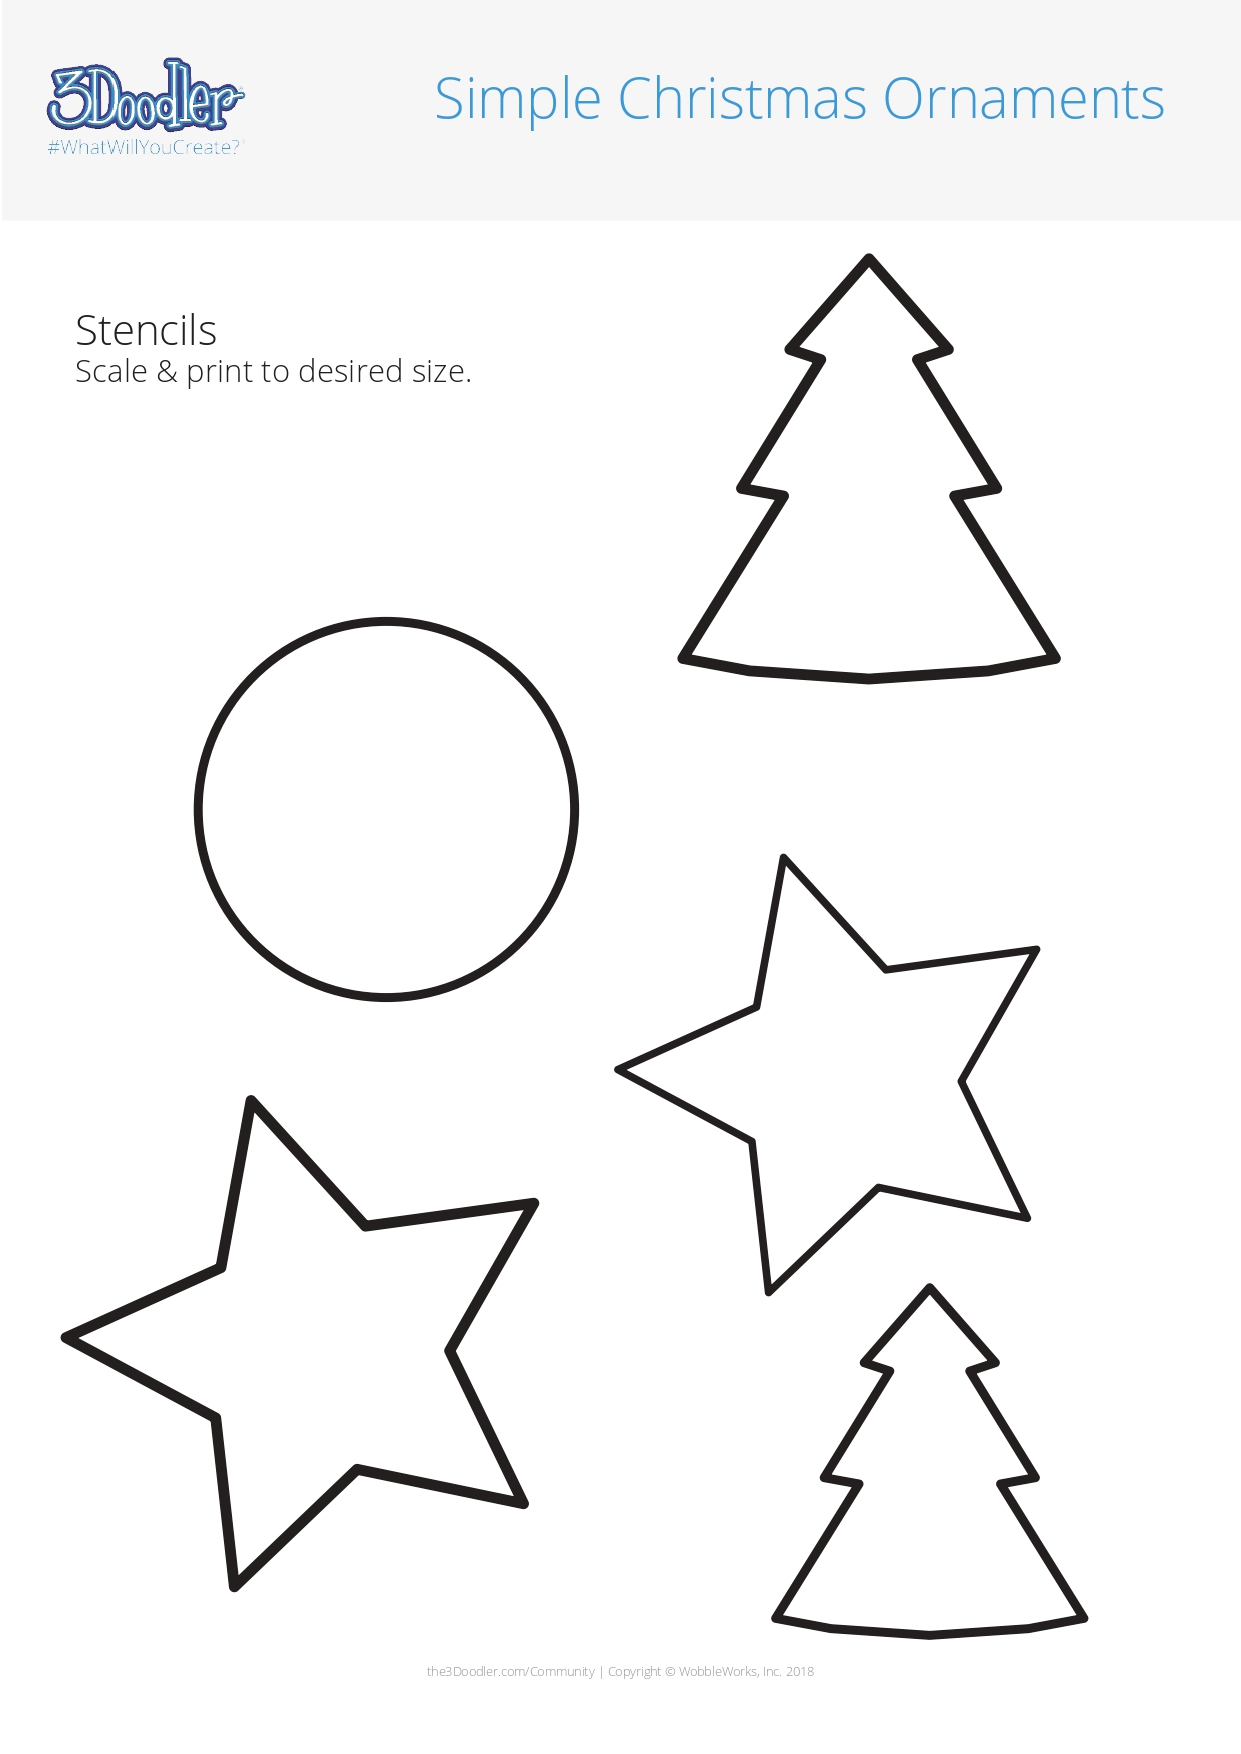 3D Pen Stencil Template Simple Holidays Ornaments